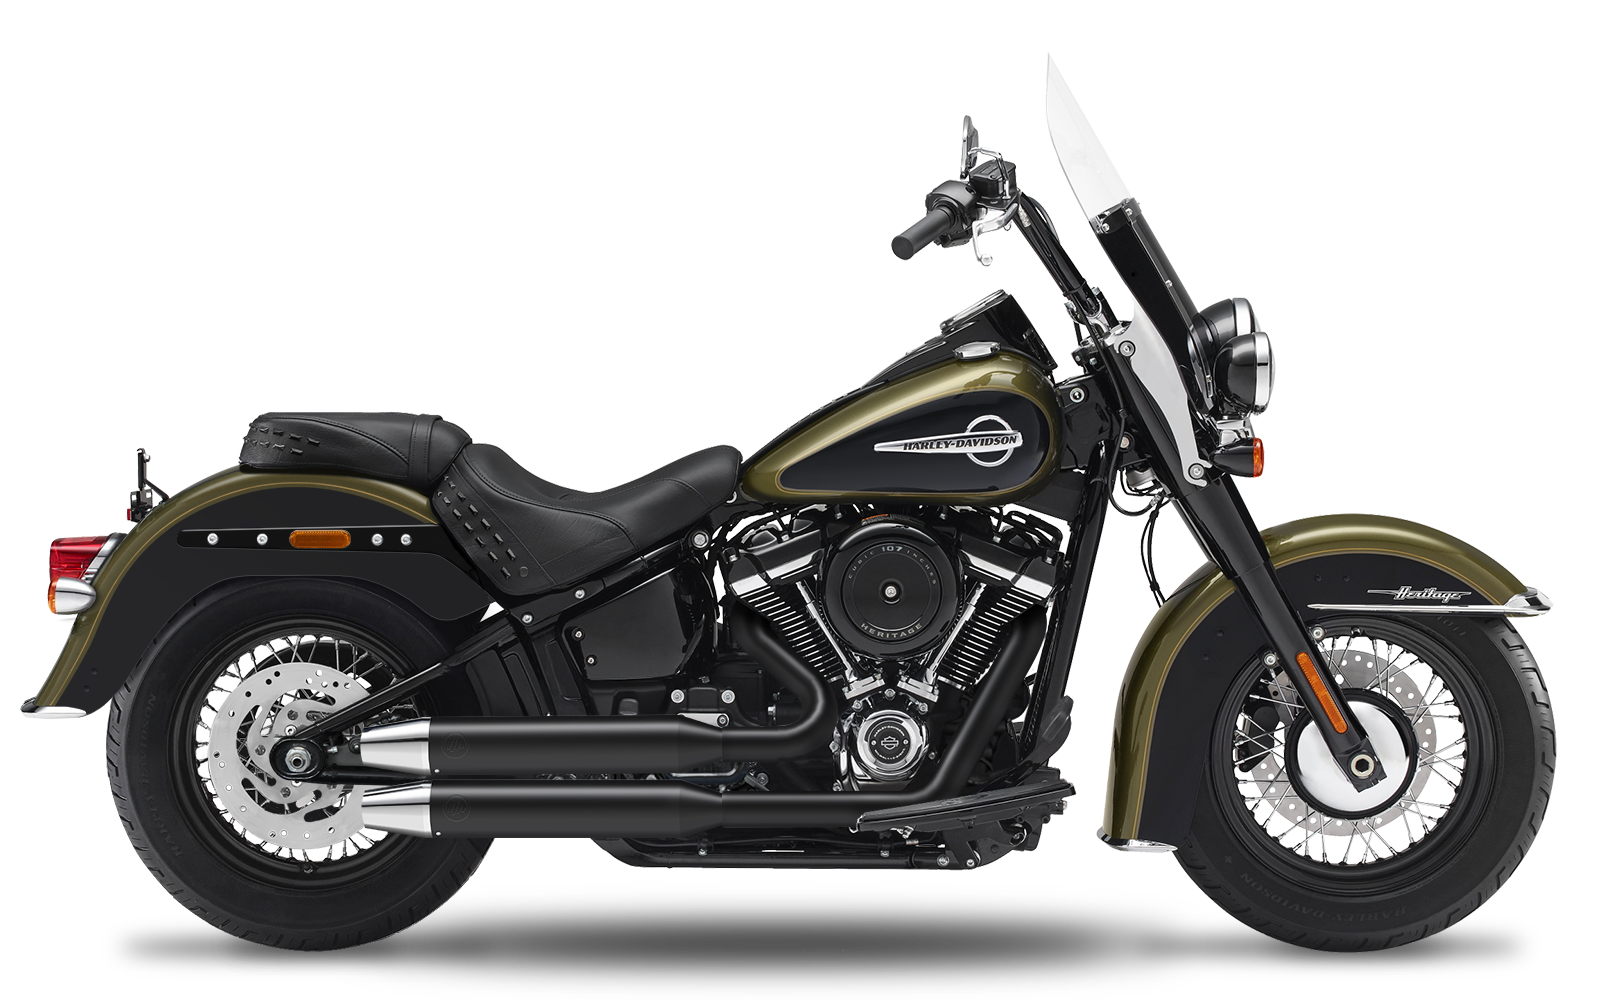 Softail - Heritage Classic 114 / S - ME114 - 2018-2020 - Complete systems